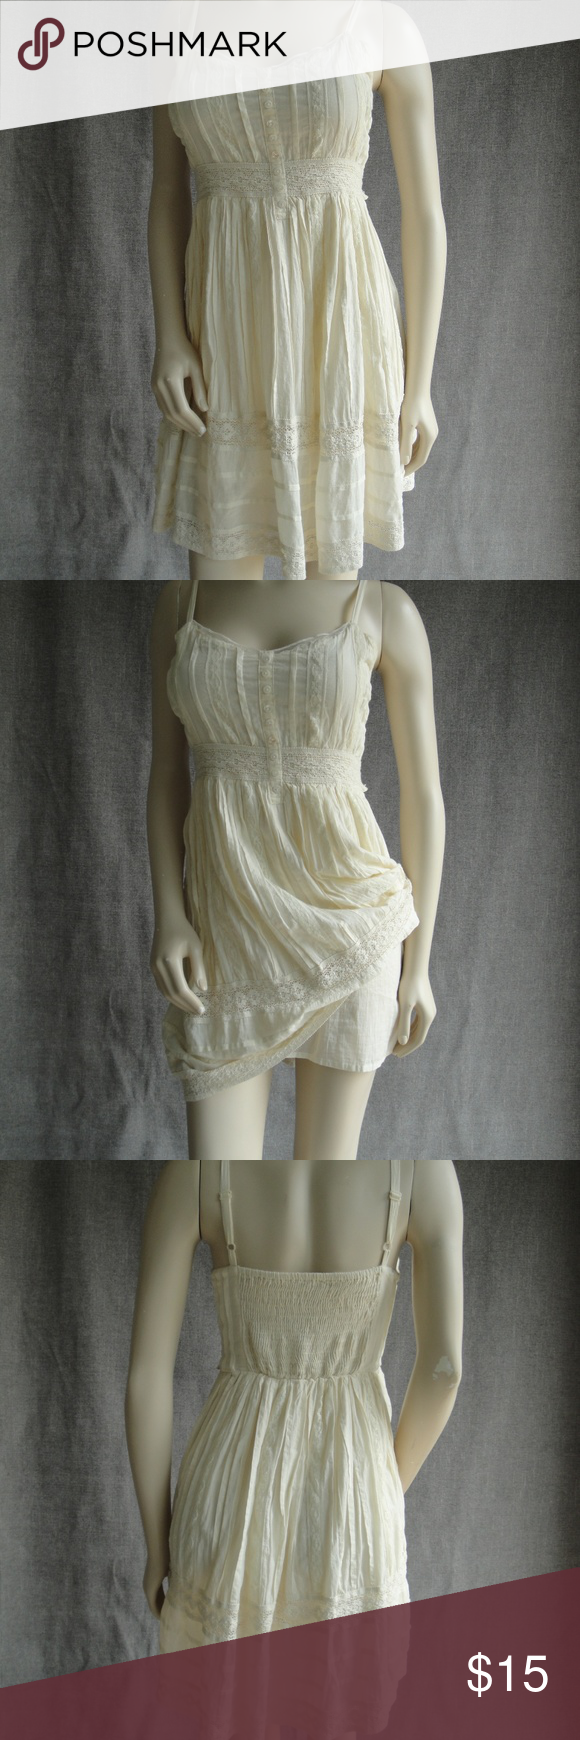 Ladies romantic cream short sundress Small Delia's size small. Adjustable straps, fully lined, 100% cotton. Measures from top middle of bodice to hem 27. dELiA*s Dresses #shortsundress